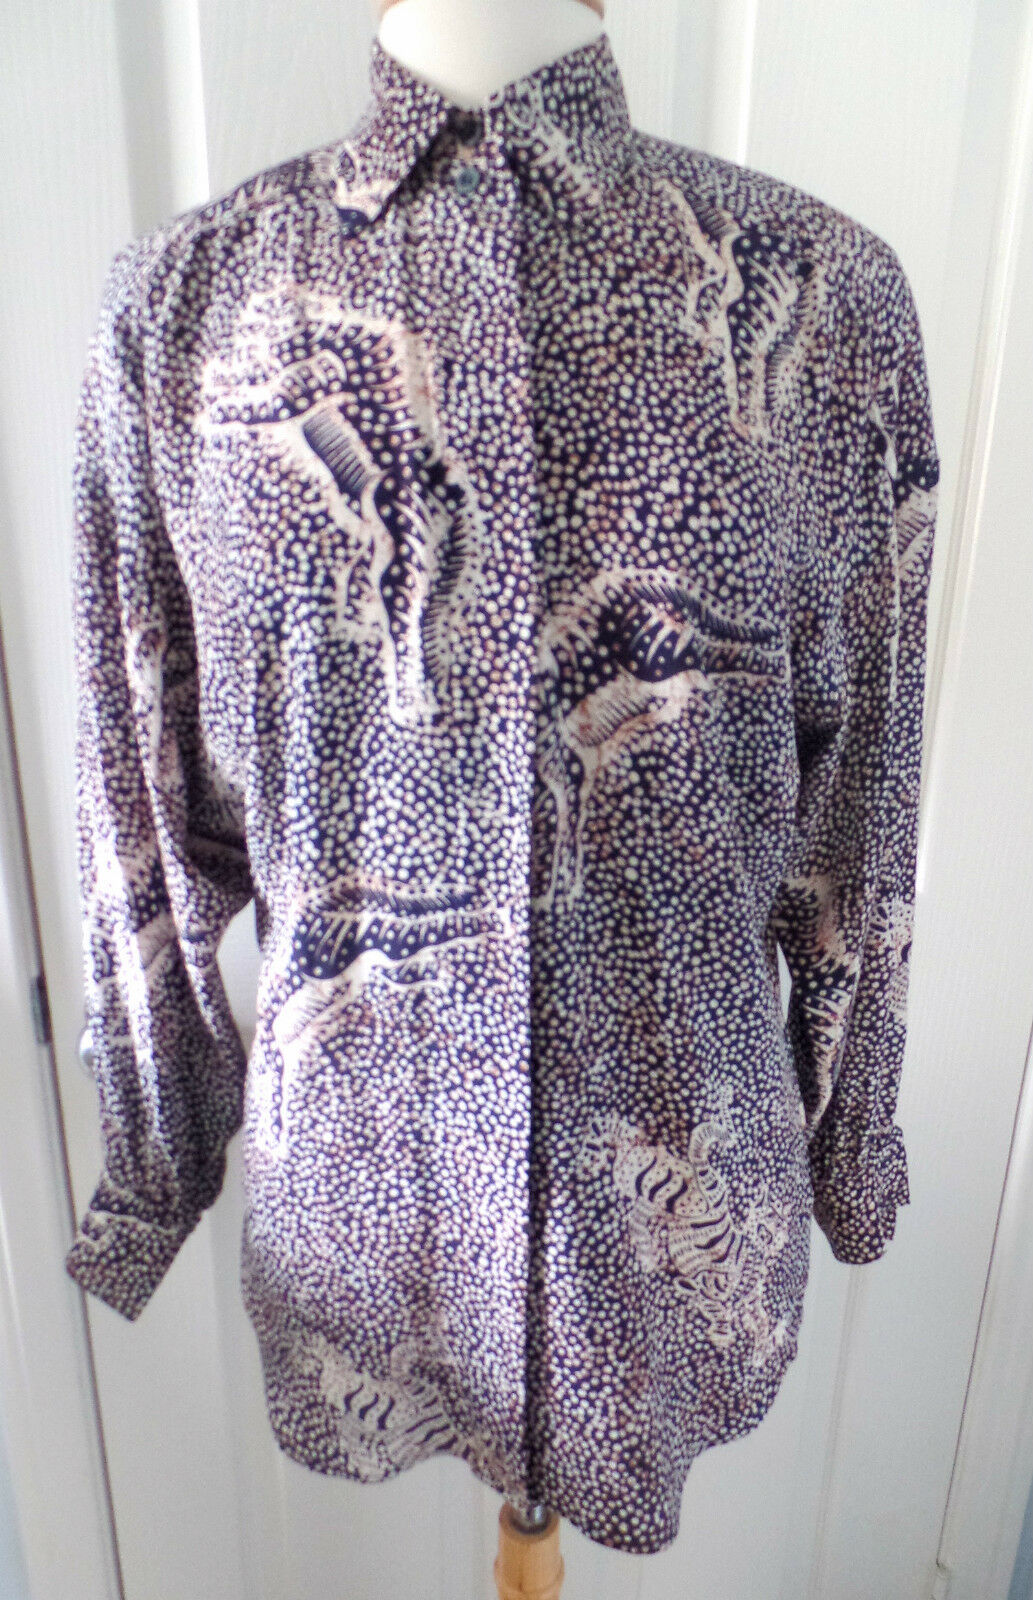 Vintage ESCADA BY MARGARETHA LEY Navy Tiger Silk Blouse SZ 34